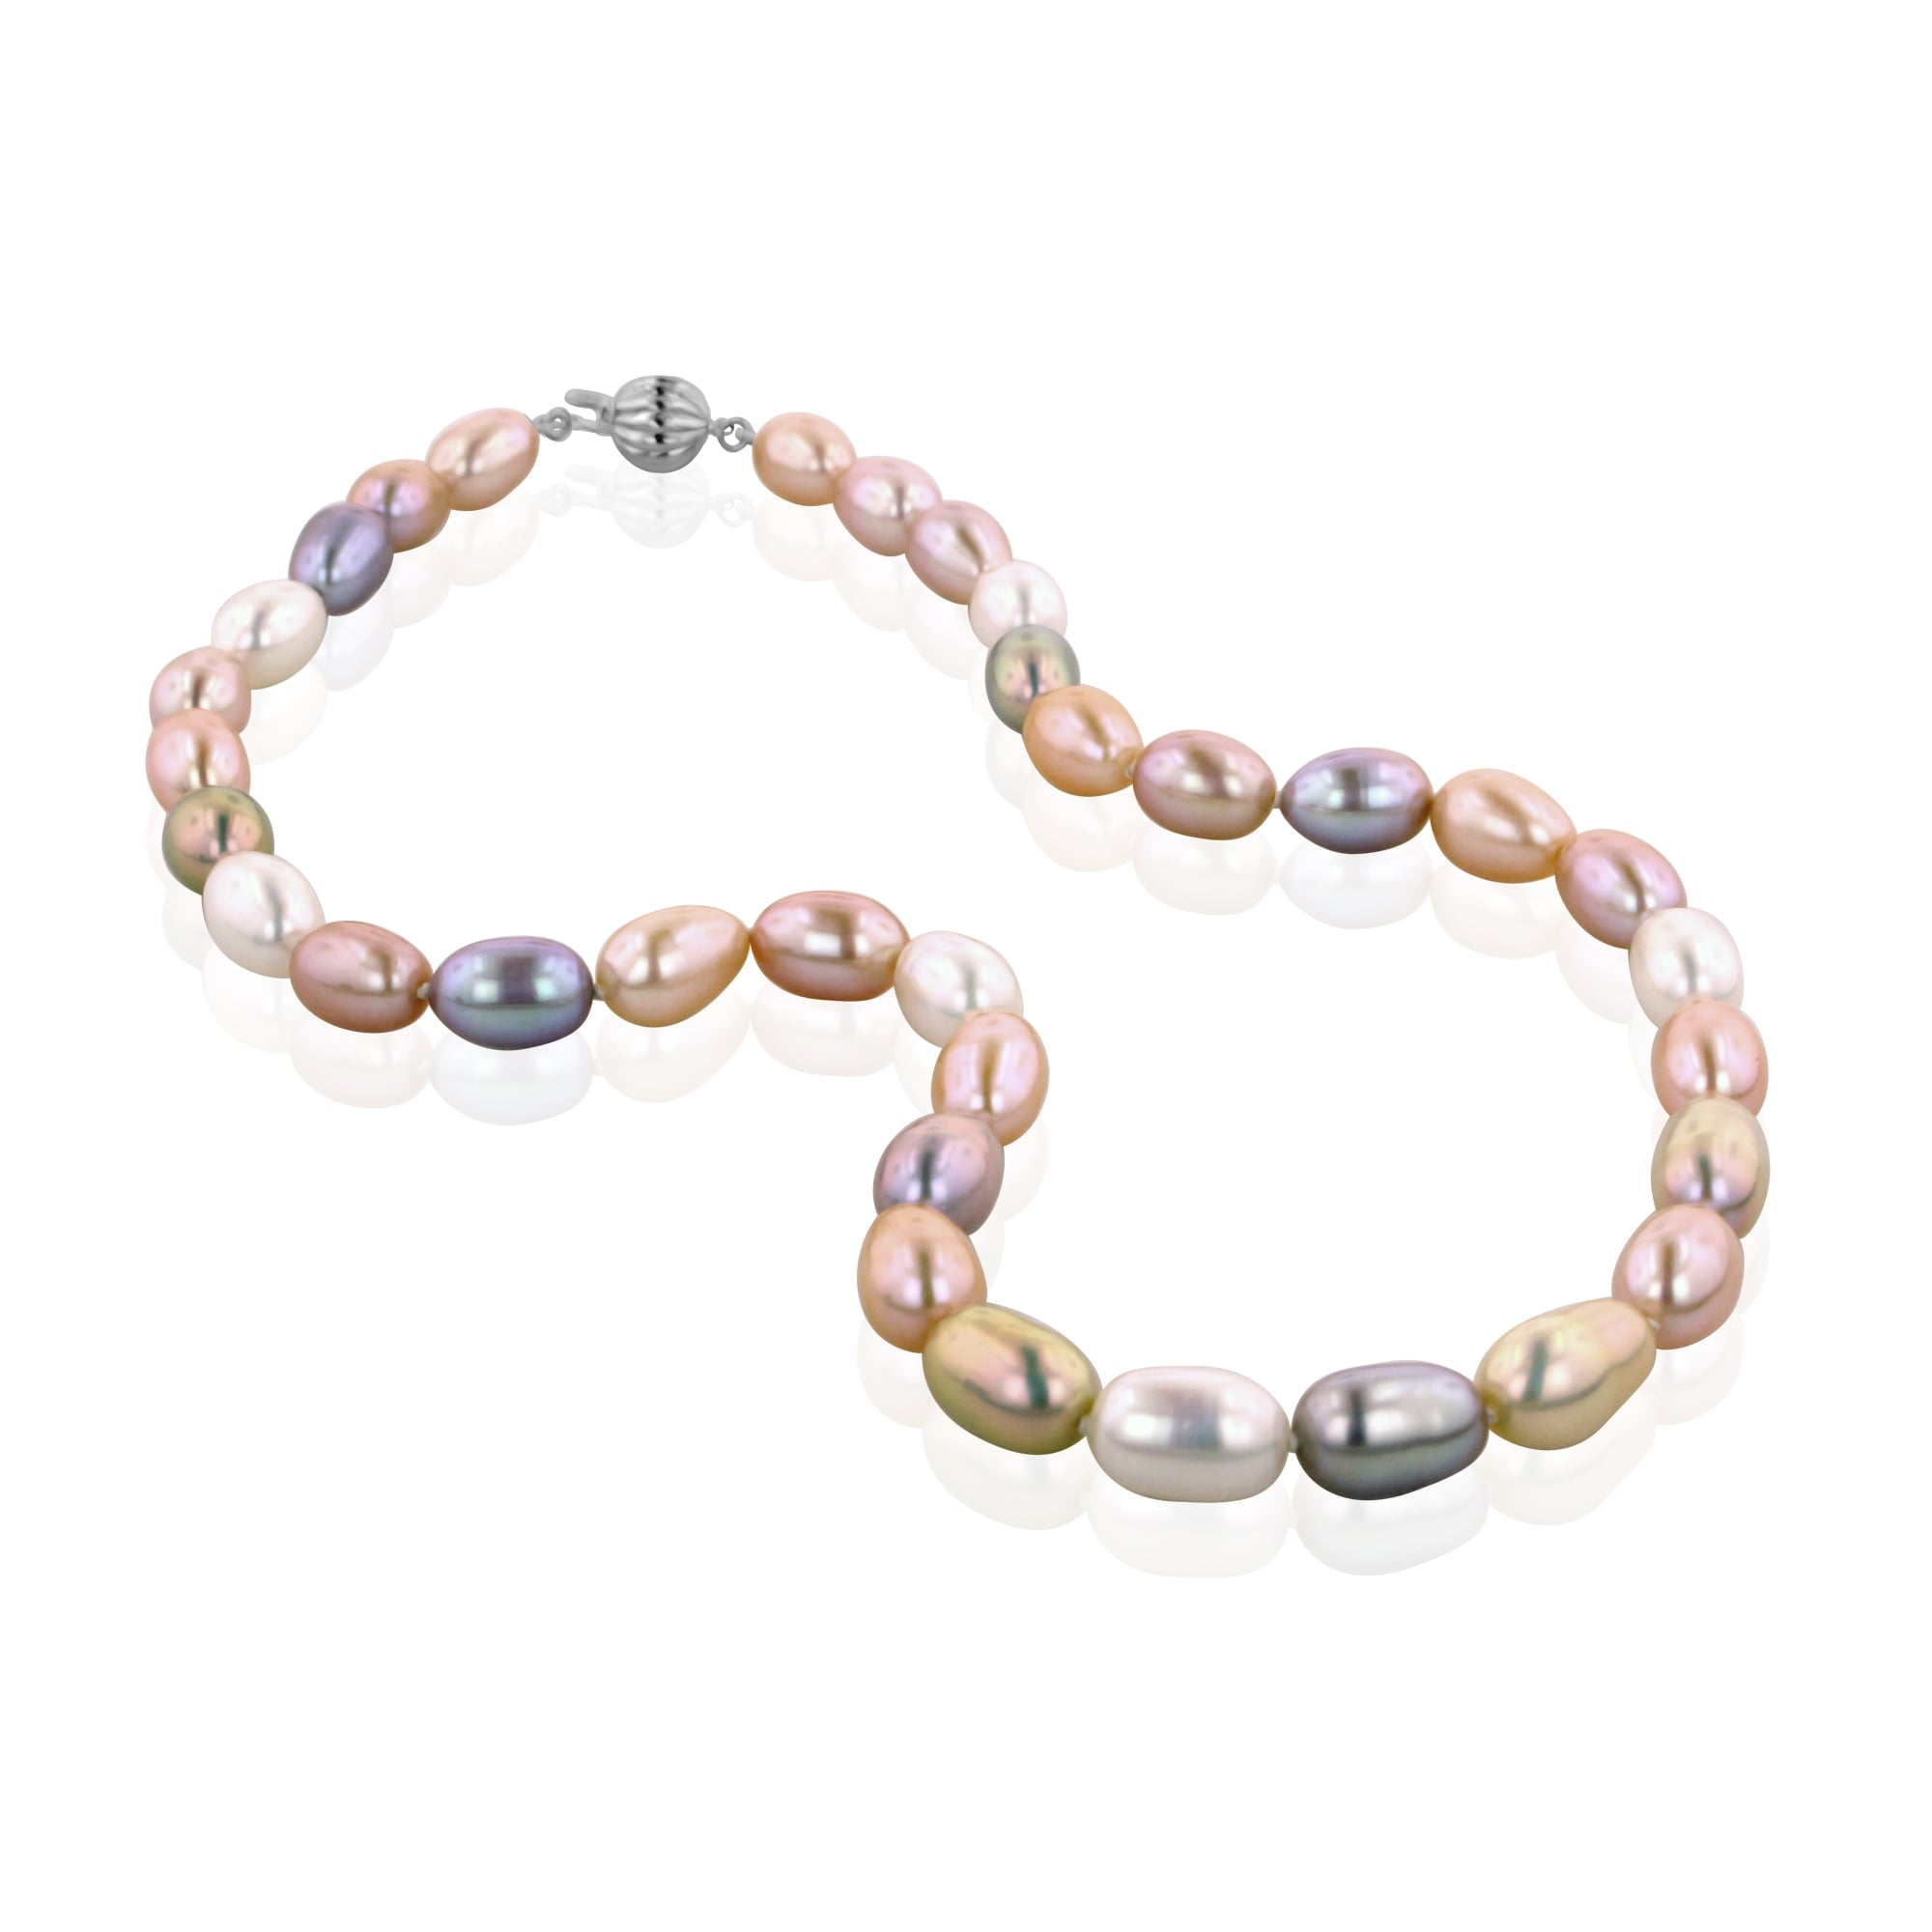 jewellery beautiful made to using product order mary necklace img pearls pearl berry and